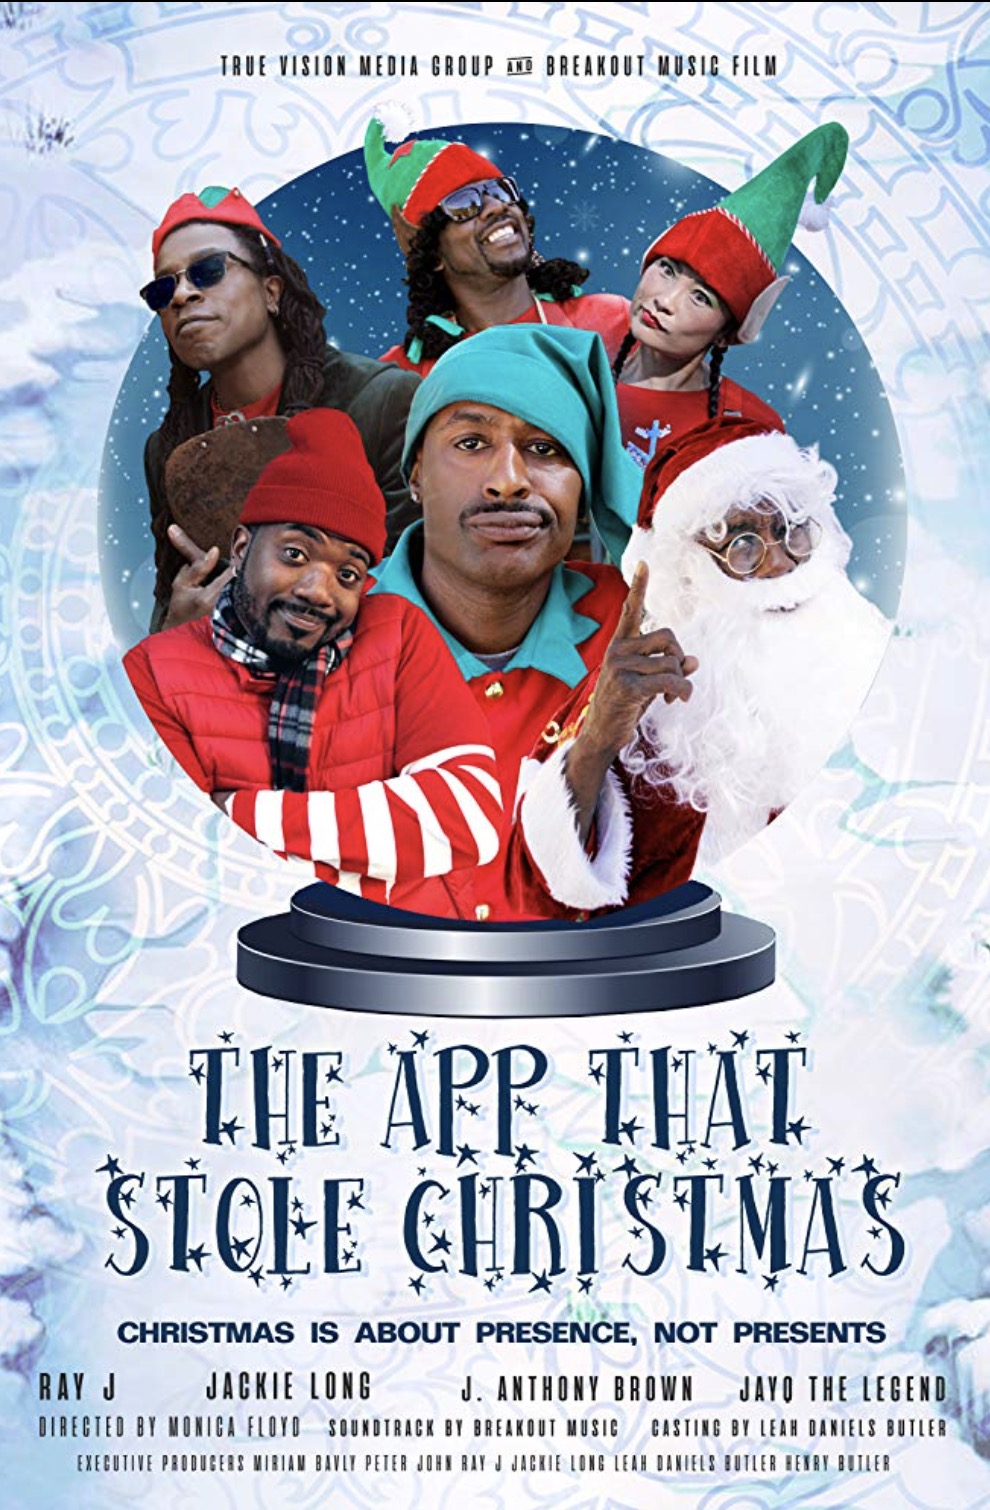 The App That Stole Christmas.jpg